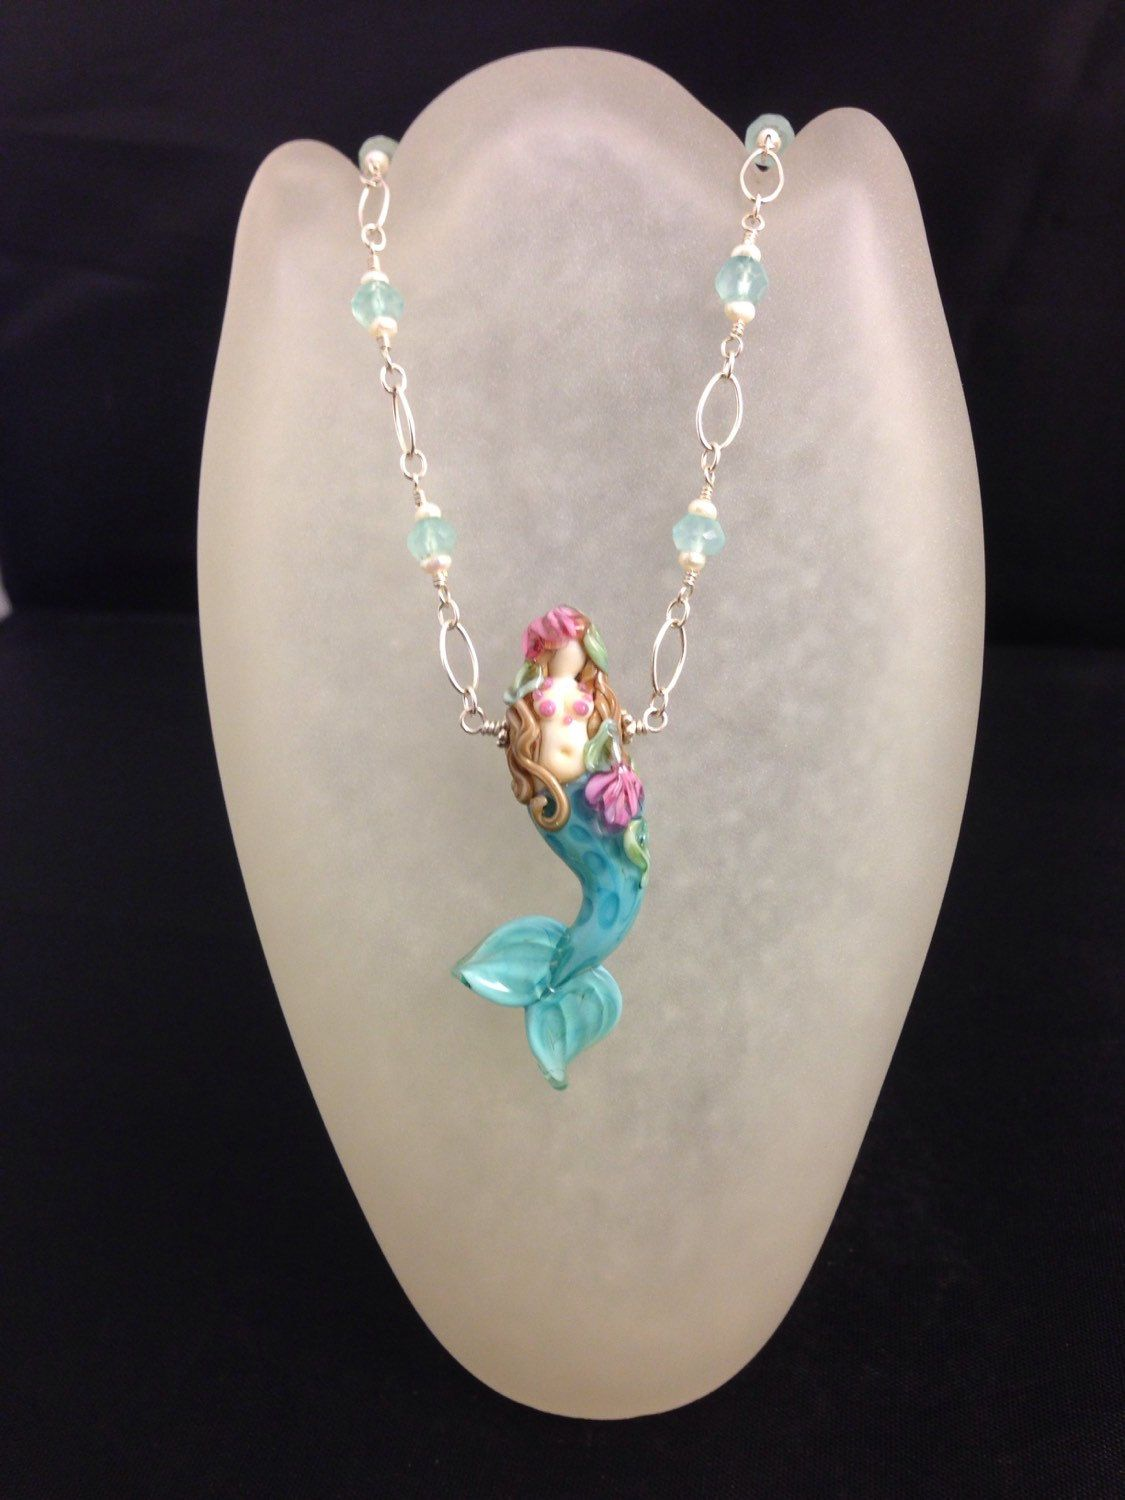 Mermaid necklace hand sculpted glass mermaid necklace